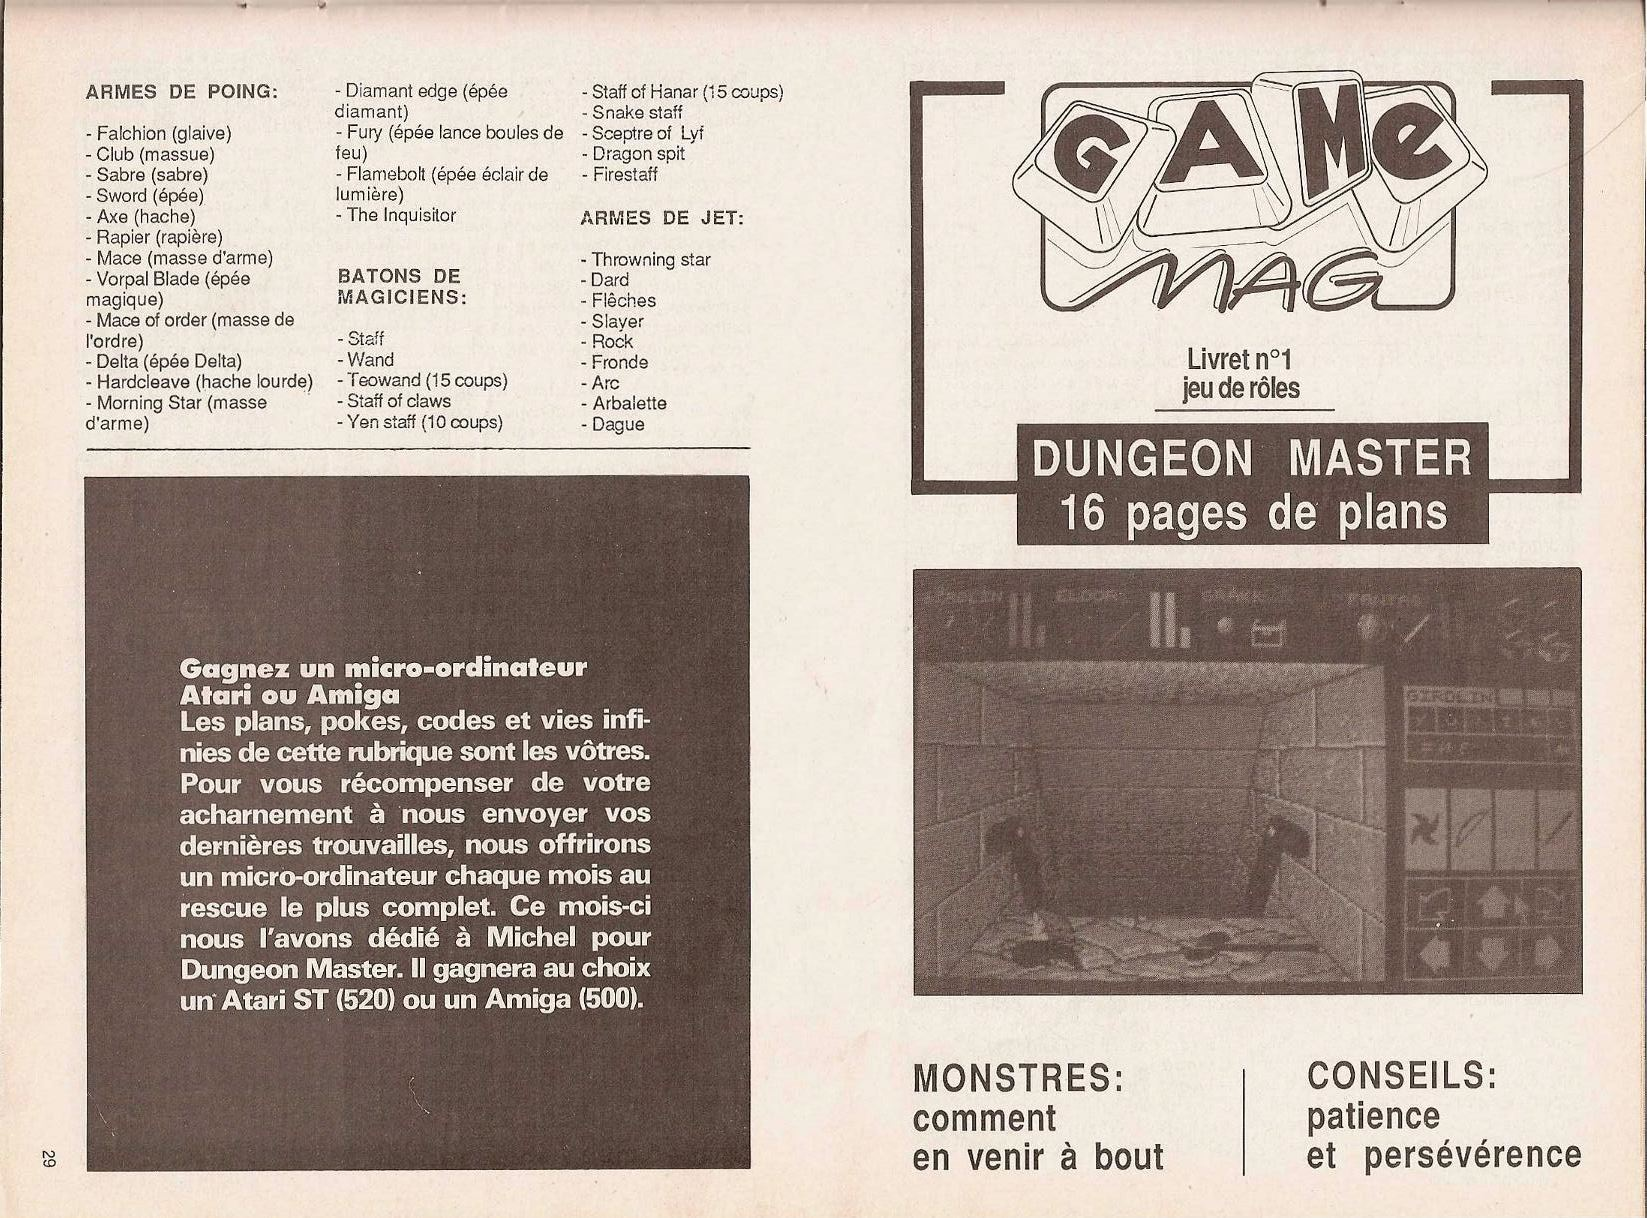 Dungeon Master Guide published in French magazine 'Game Mag', Issue #10 September 1988, Page 29